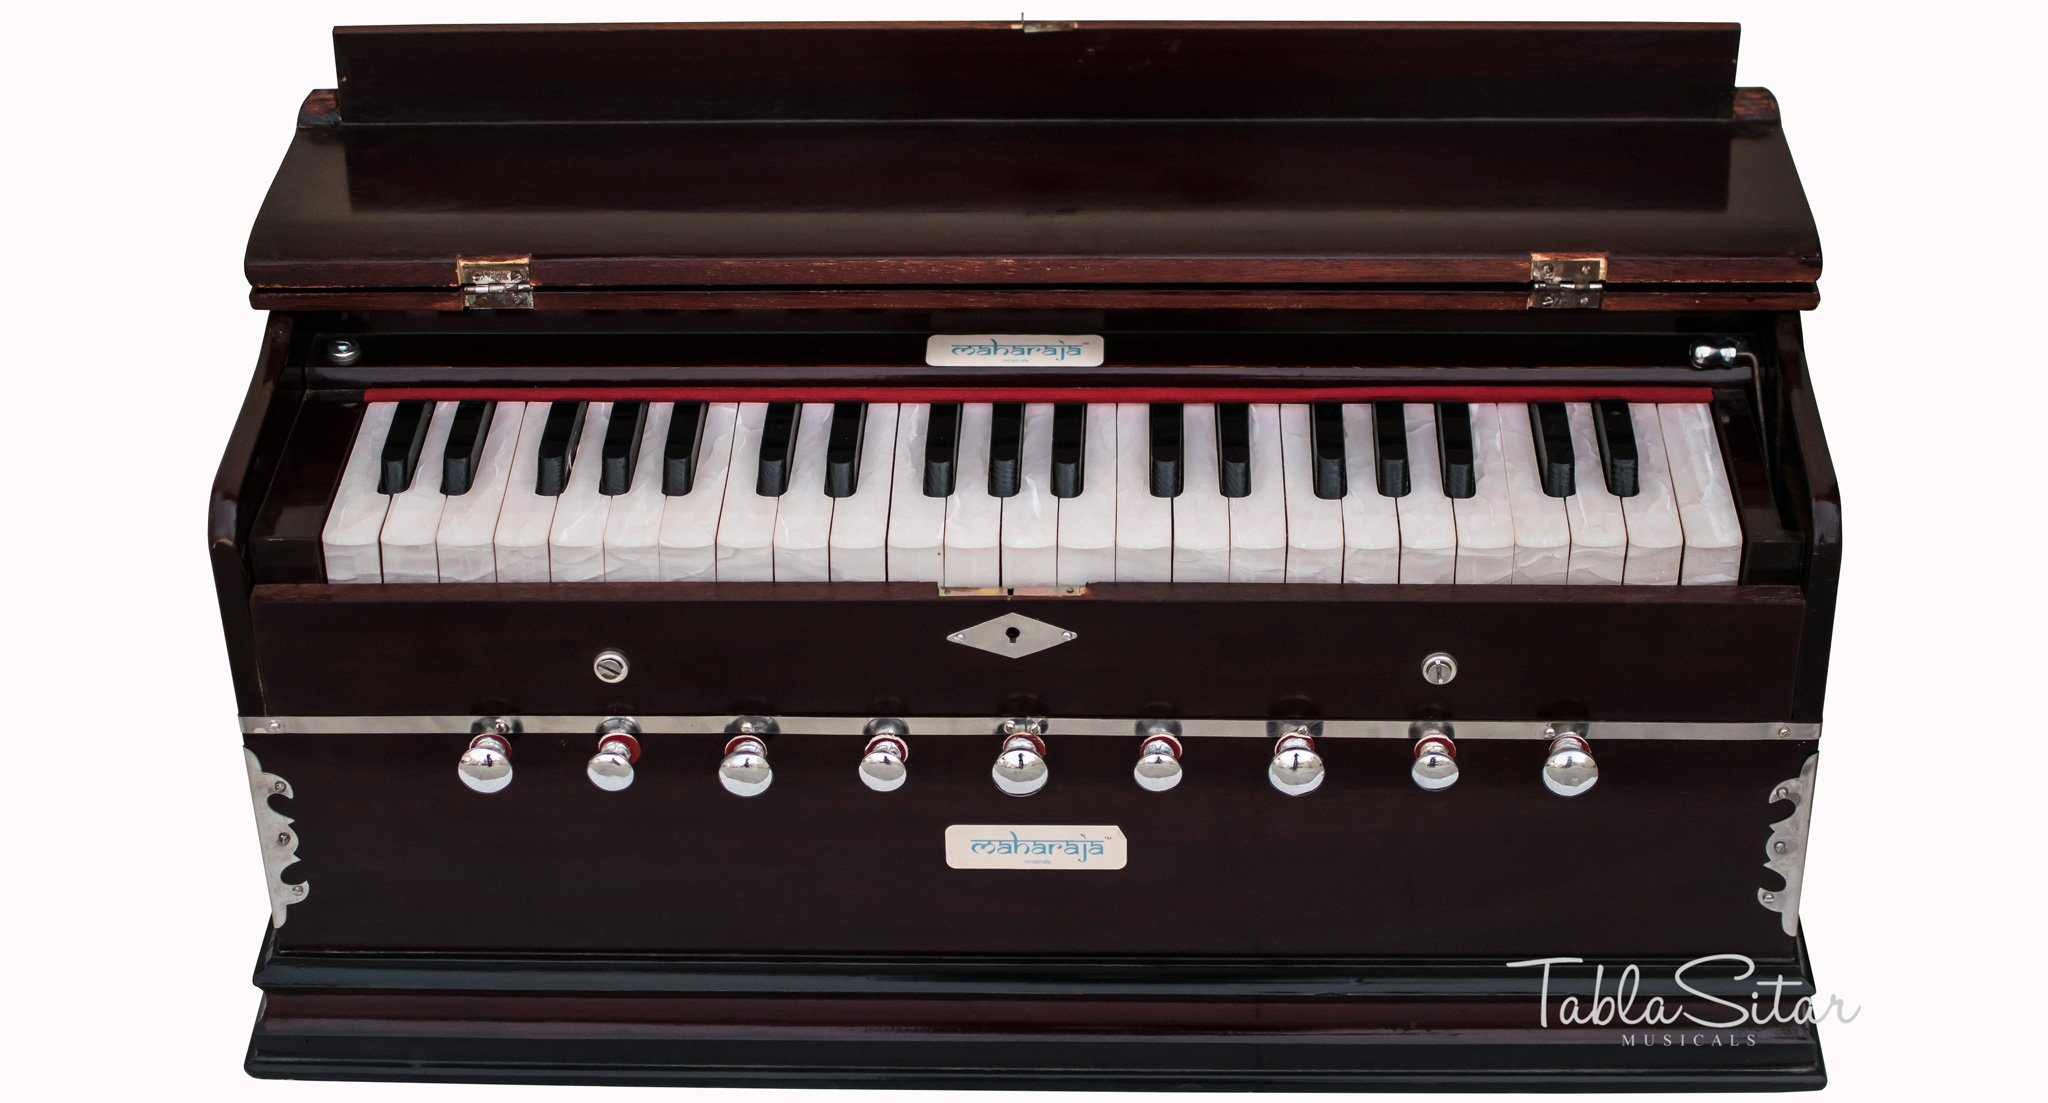 Maharaja Musicals Harmonium - 9 Stop - Sangeeta - 3½ Octave - With Coupler, Come with Book & Bag - T